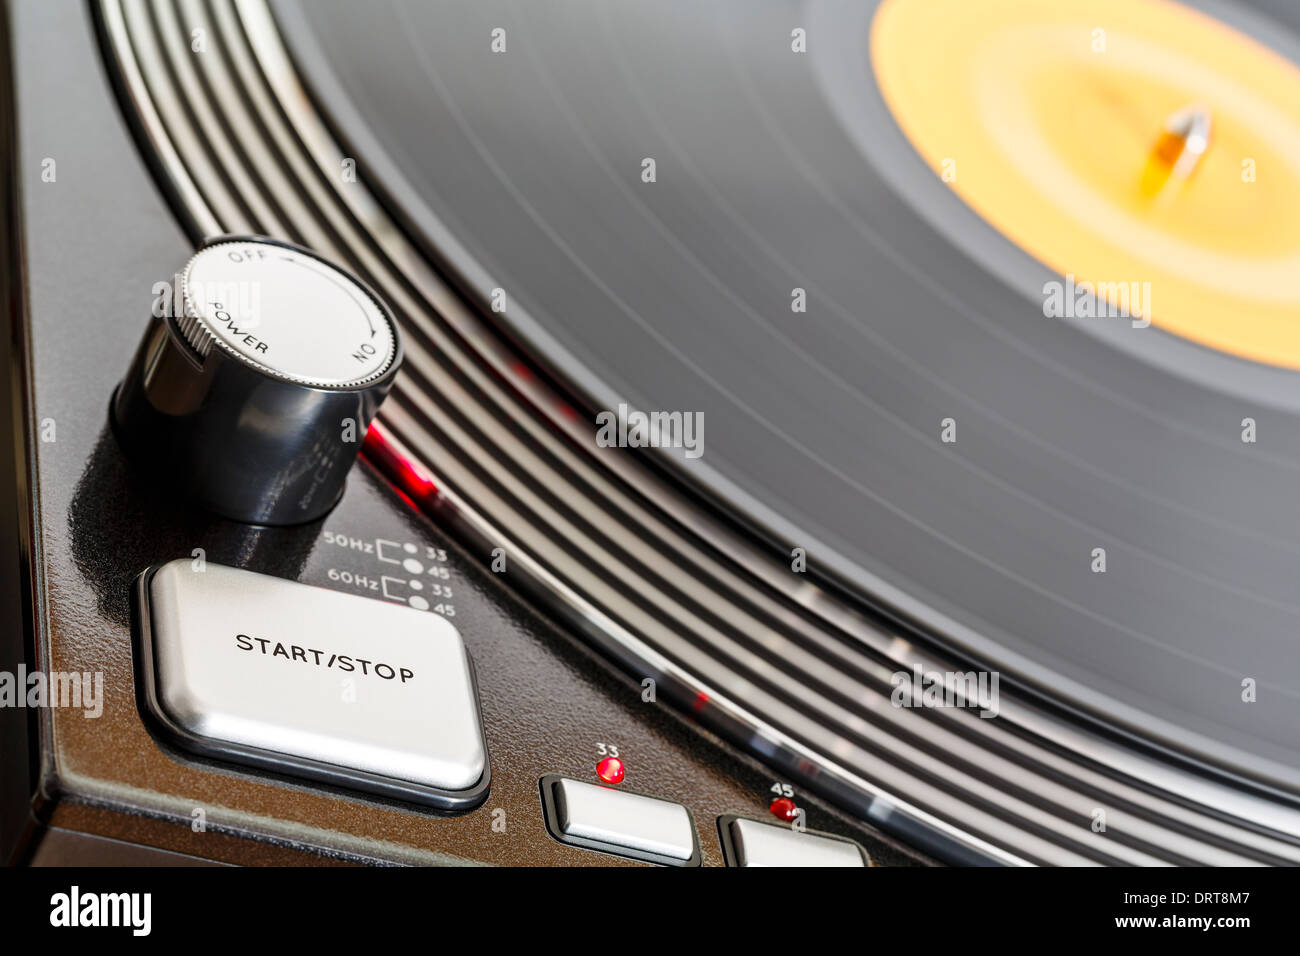 Turntable rotates Stock Photo